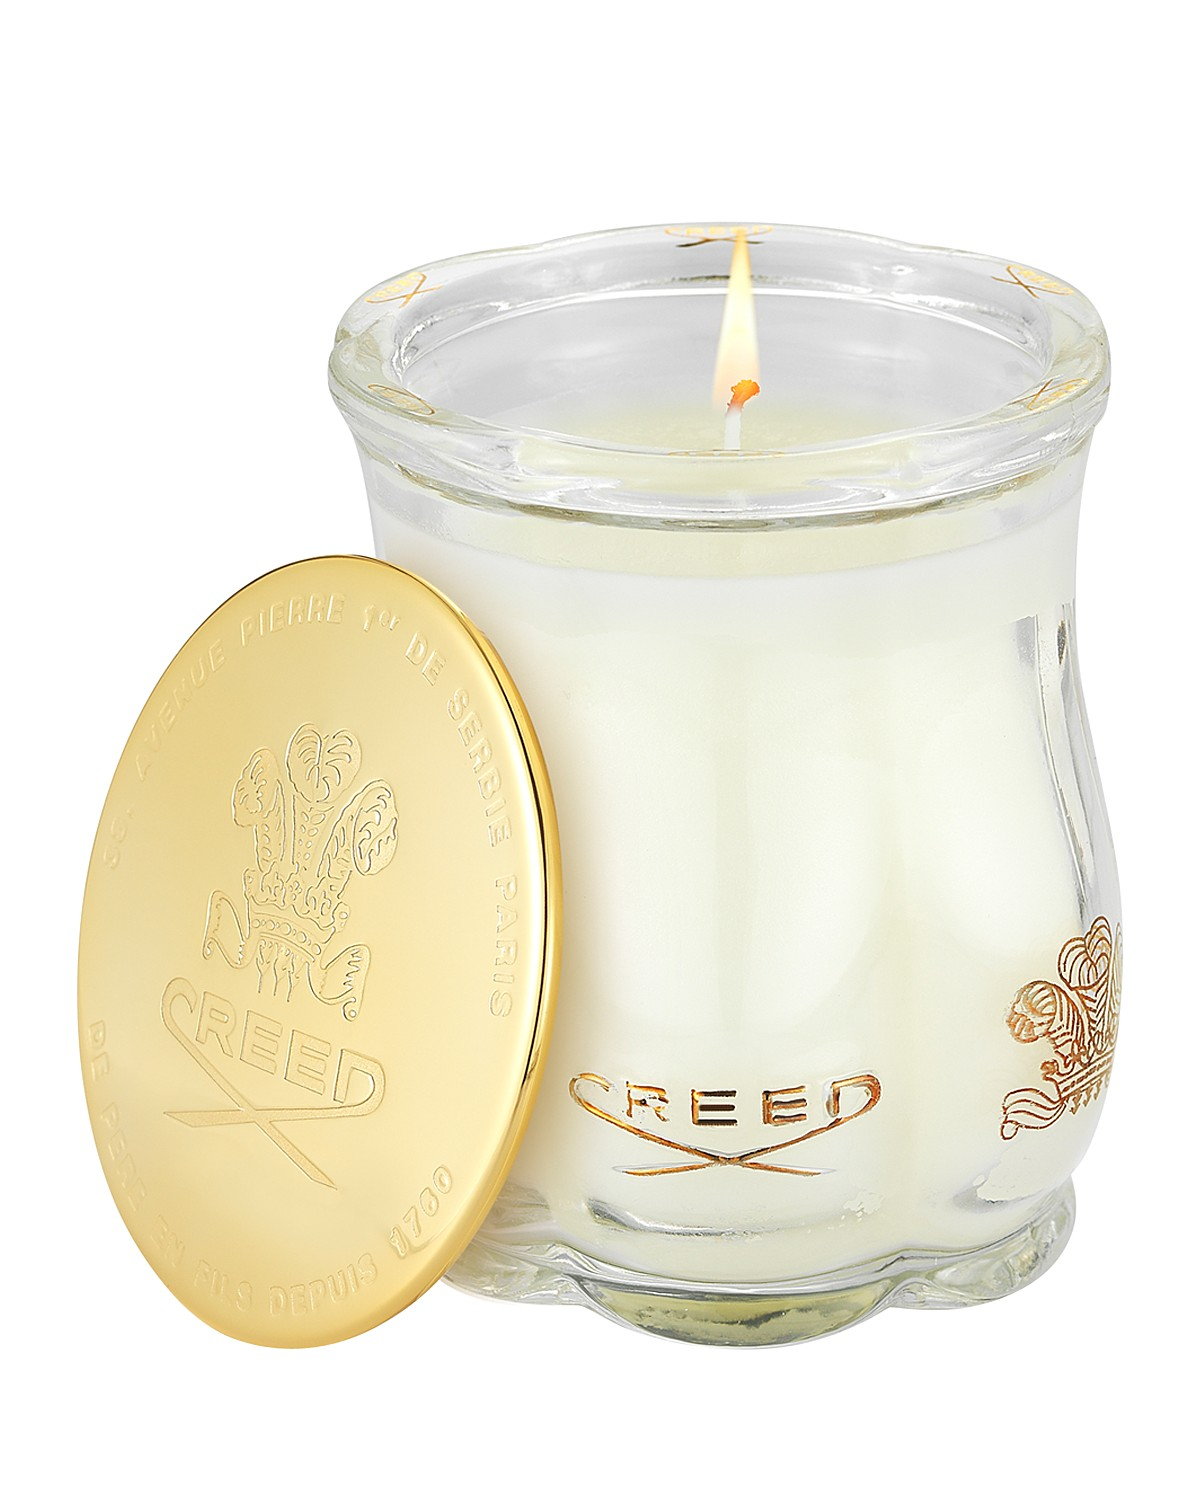 Creed Spring Flower Candle Bloomingdales